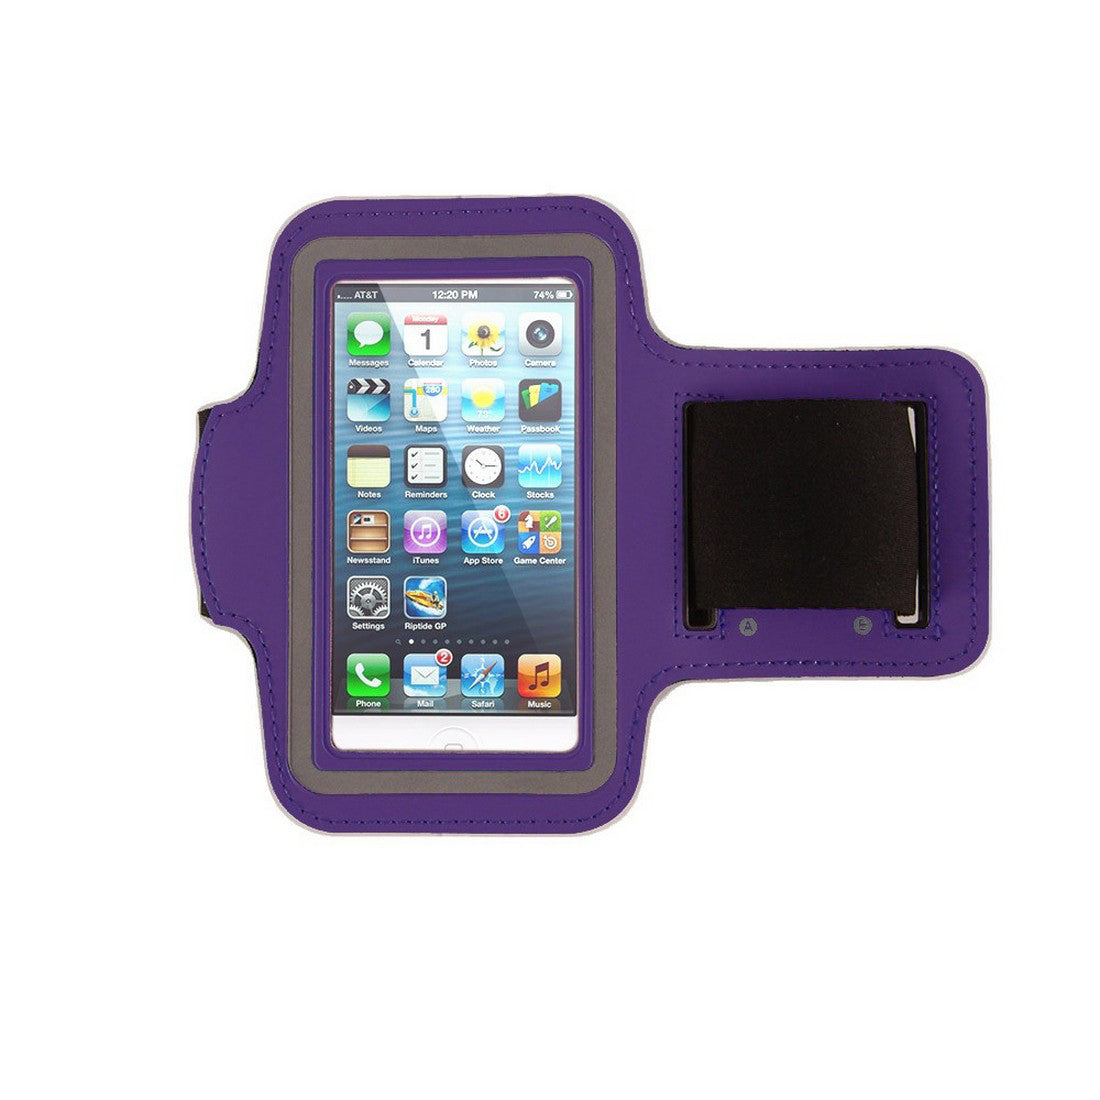 Neoprene Armband Size 01 For Iphone 4G/4S/5/5C/5S & I touch 5th Gen & Samsung i437/s4M & LG W7 & kyocera C6721/C5120 & Nokia 521 Purple